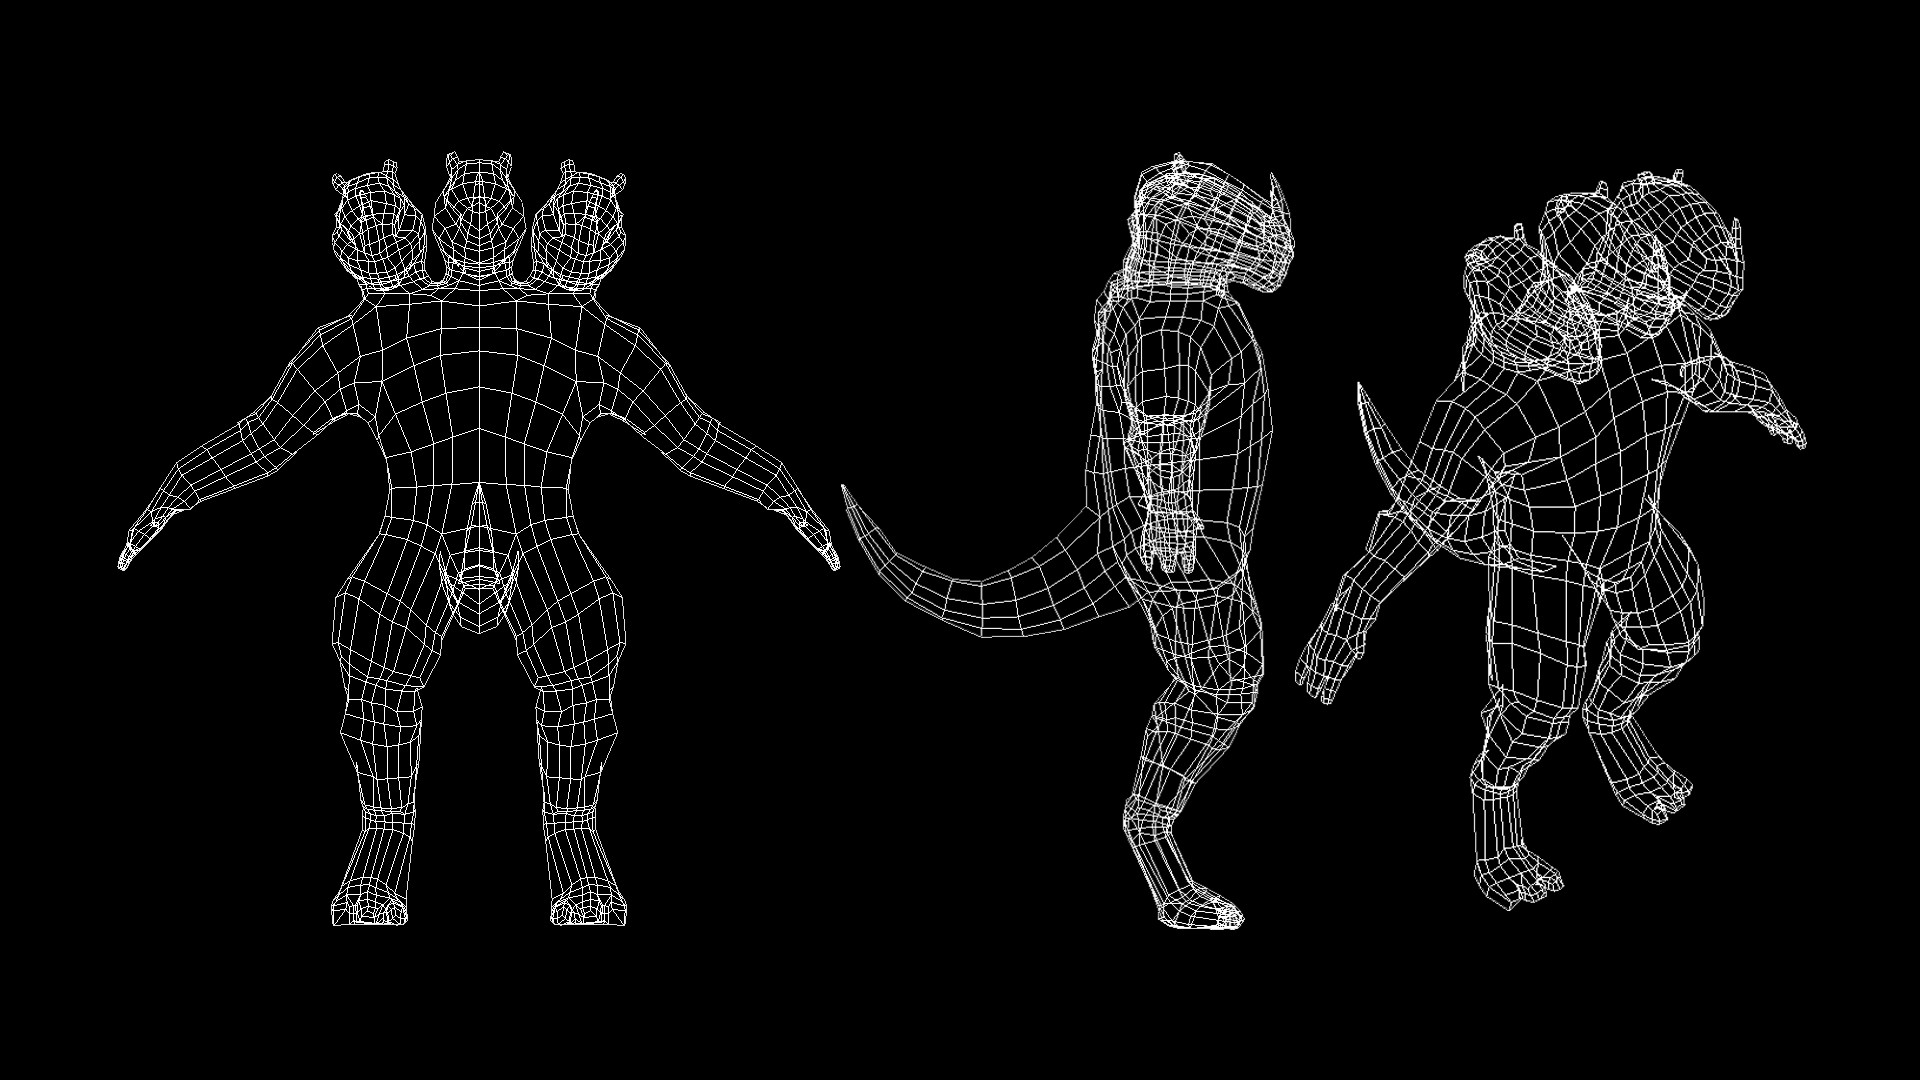 Retopologised Wireframe